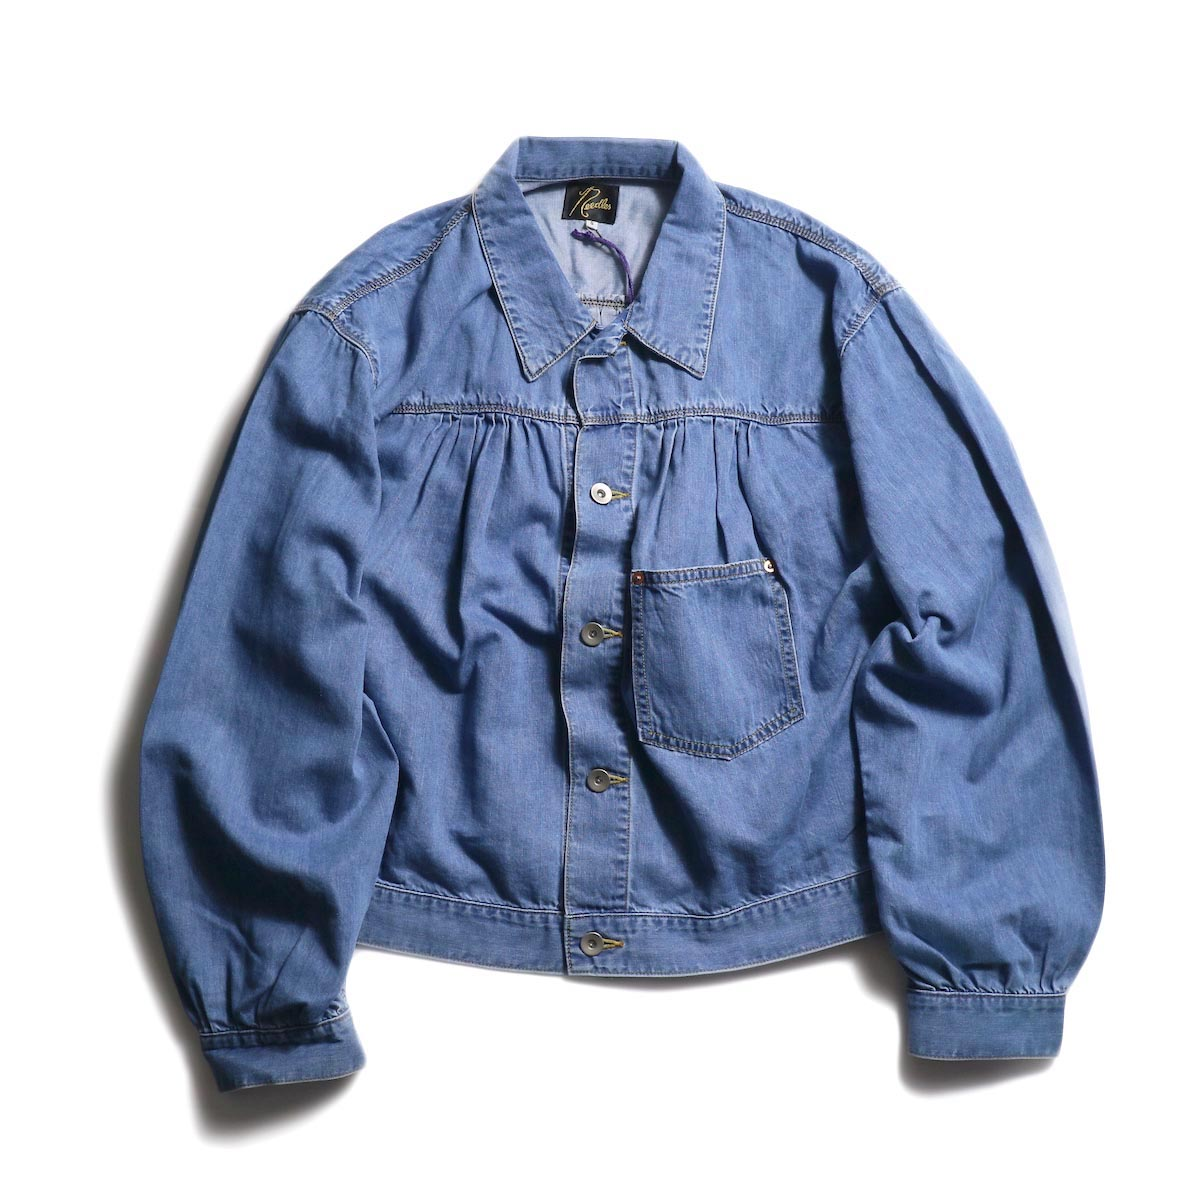 NEEDLES / Gathered Jean Jacket -7oz c/t denim